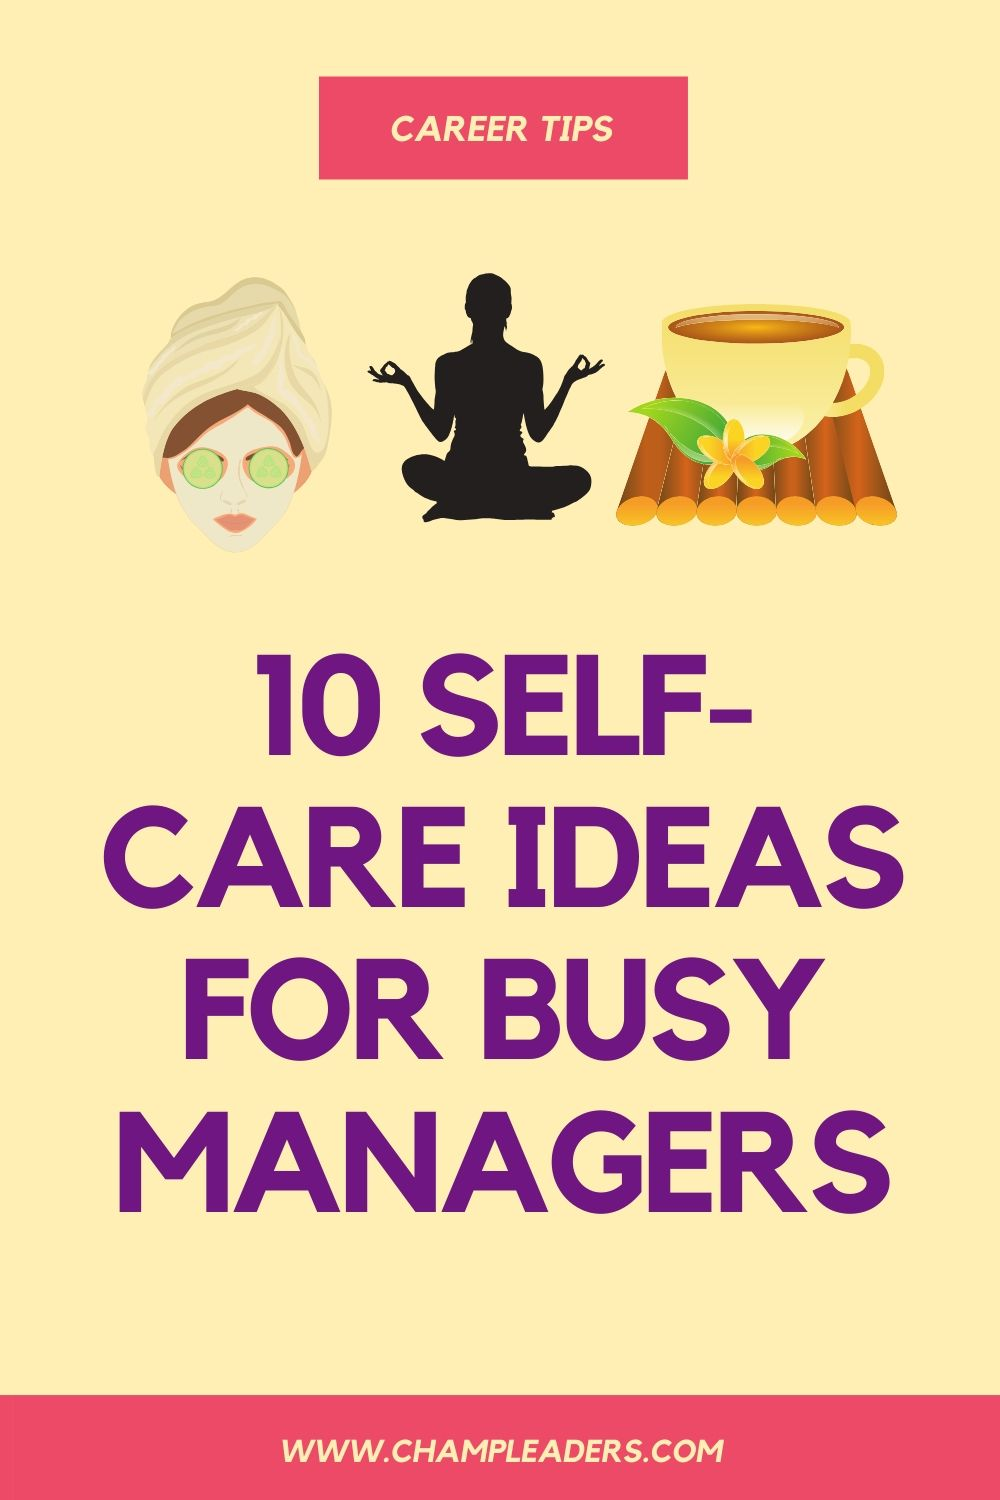 10 Self-Care Ideas for Busy Managers